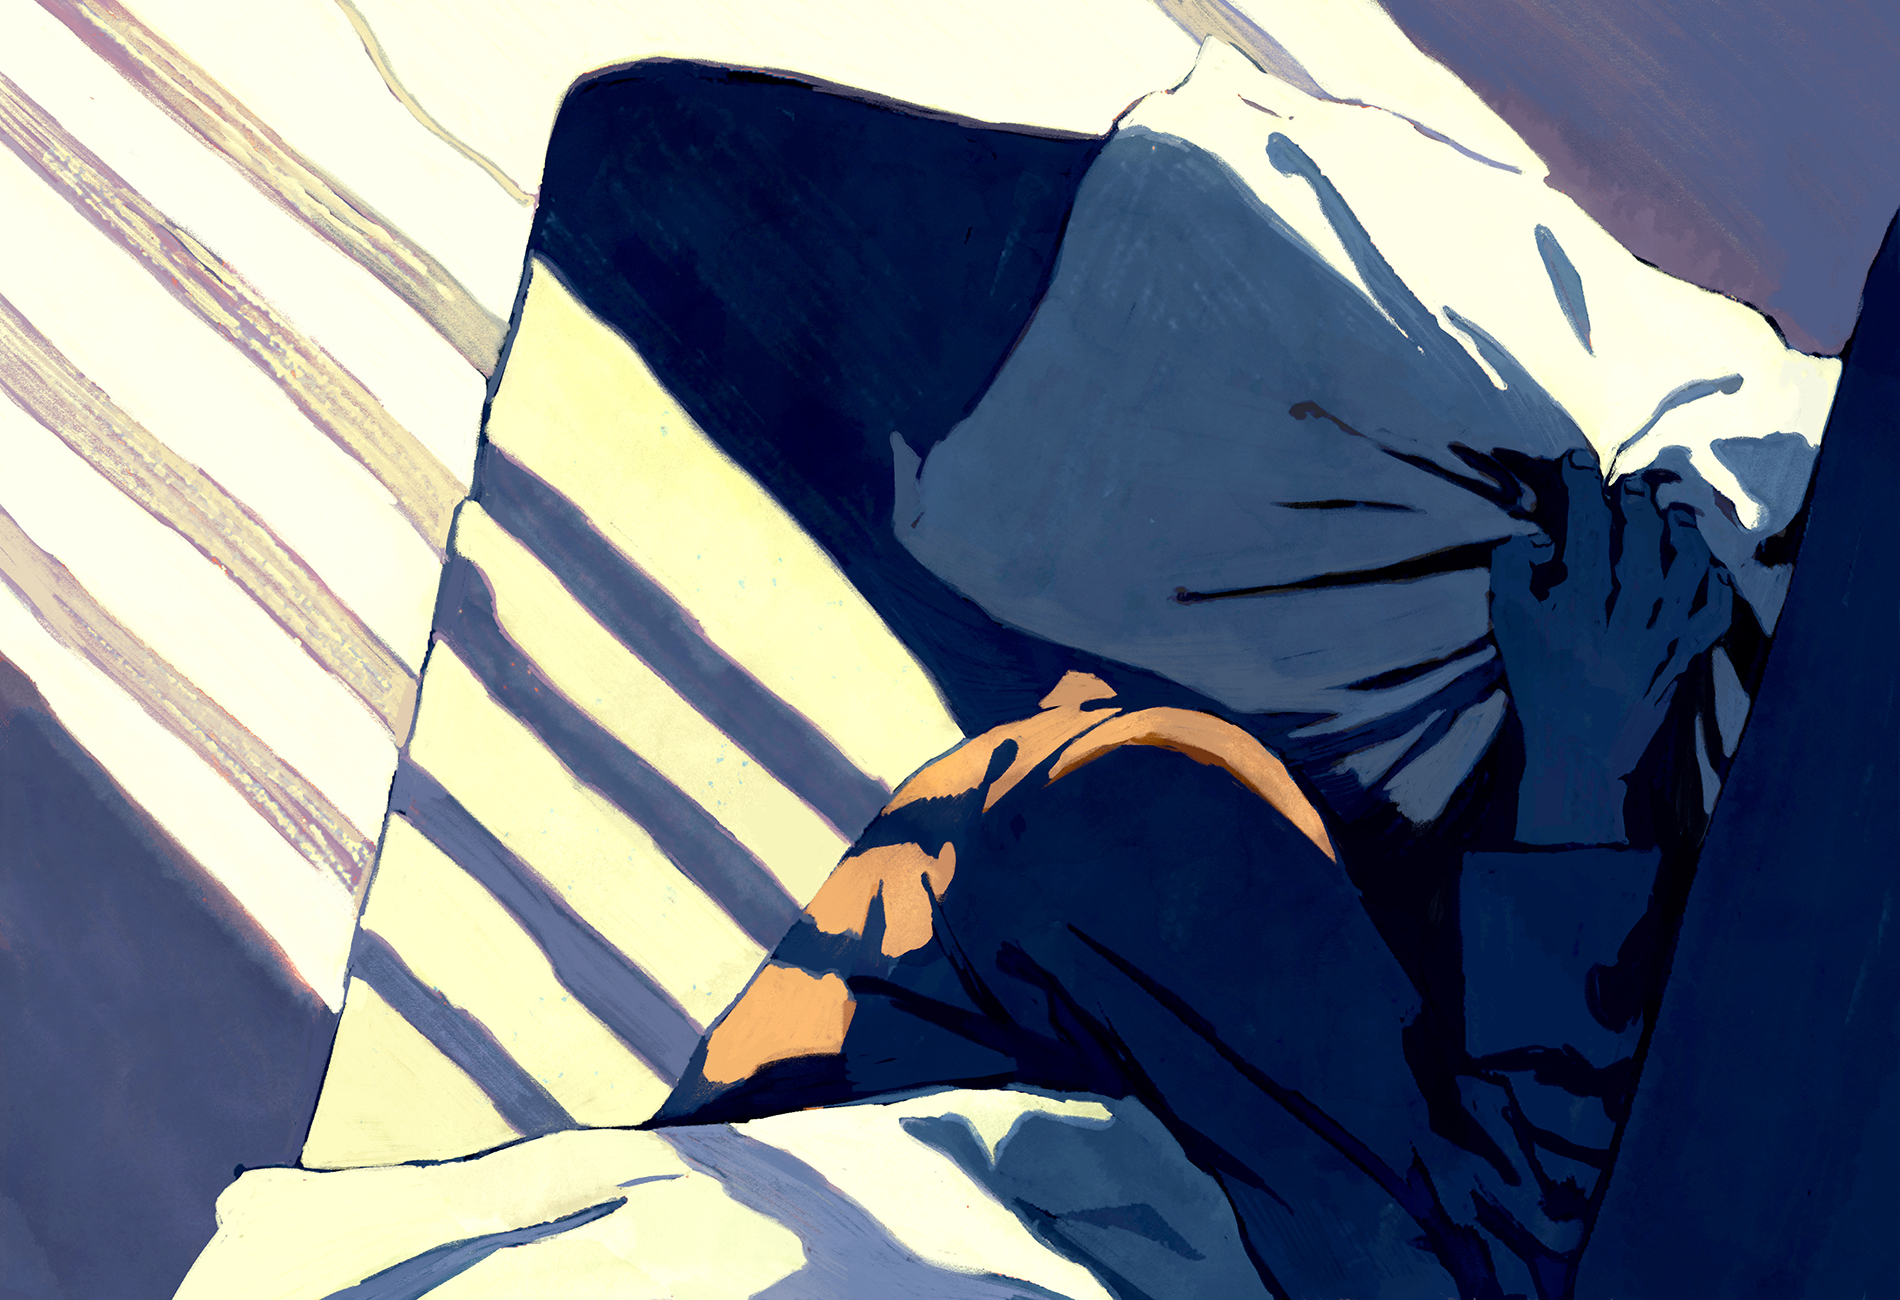 Illustration shows man trying to sleep under bright lights, with a pillow pulled over his head.